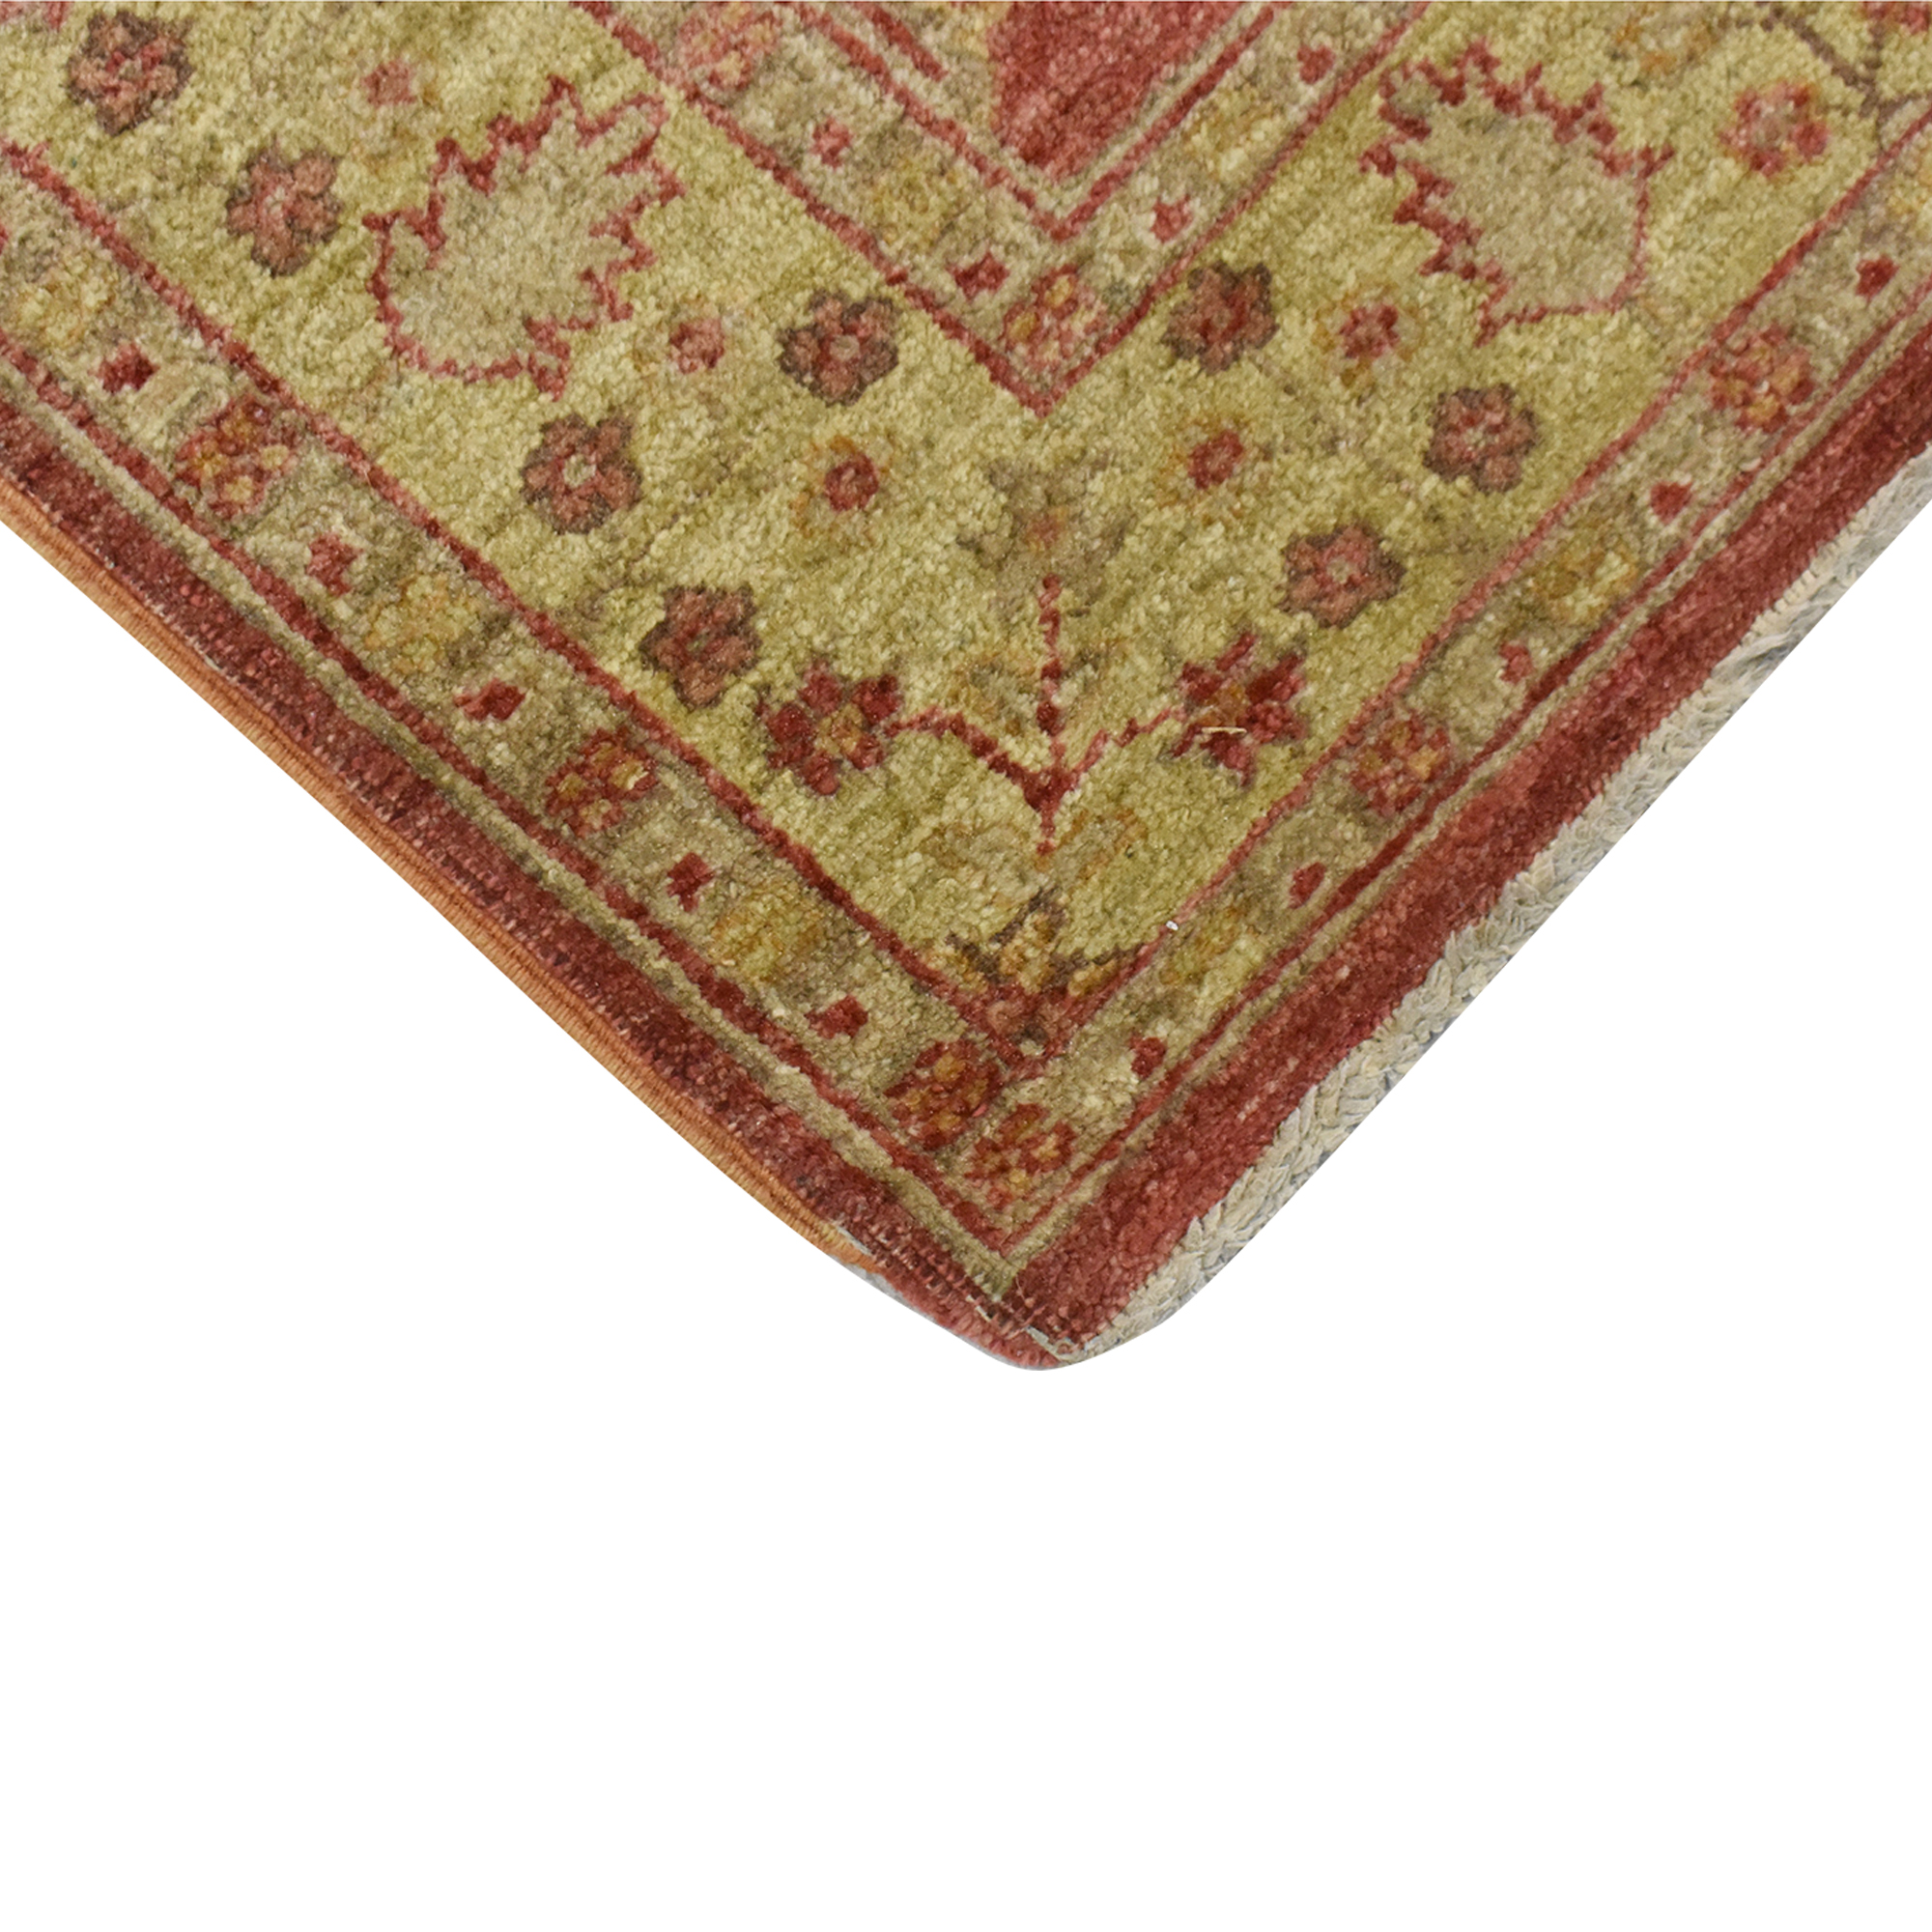 ABC Carpet & Home ABC Carpet & Home Persian Runner